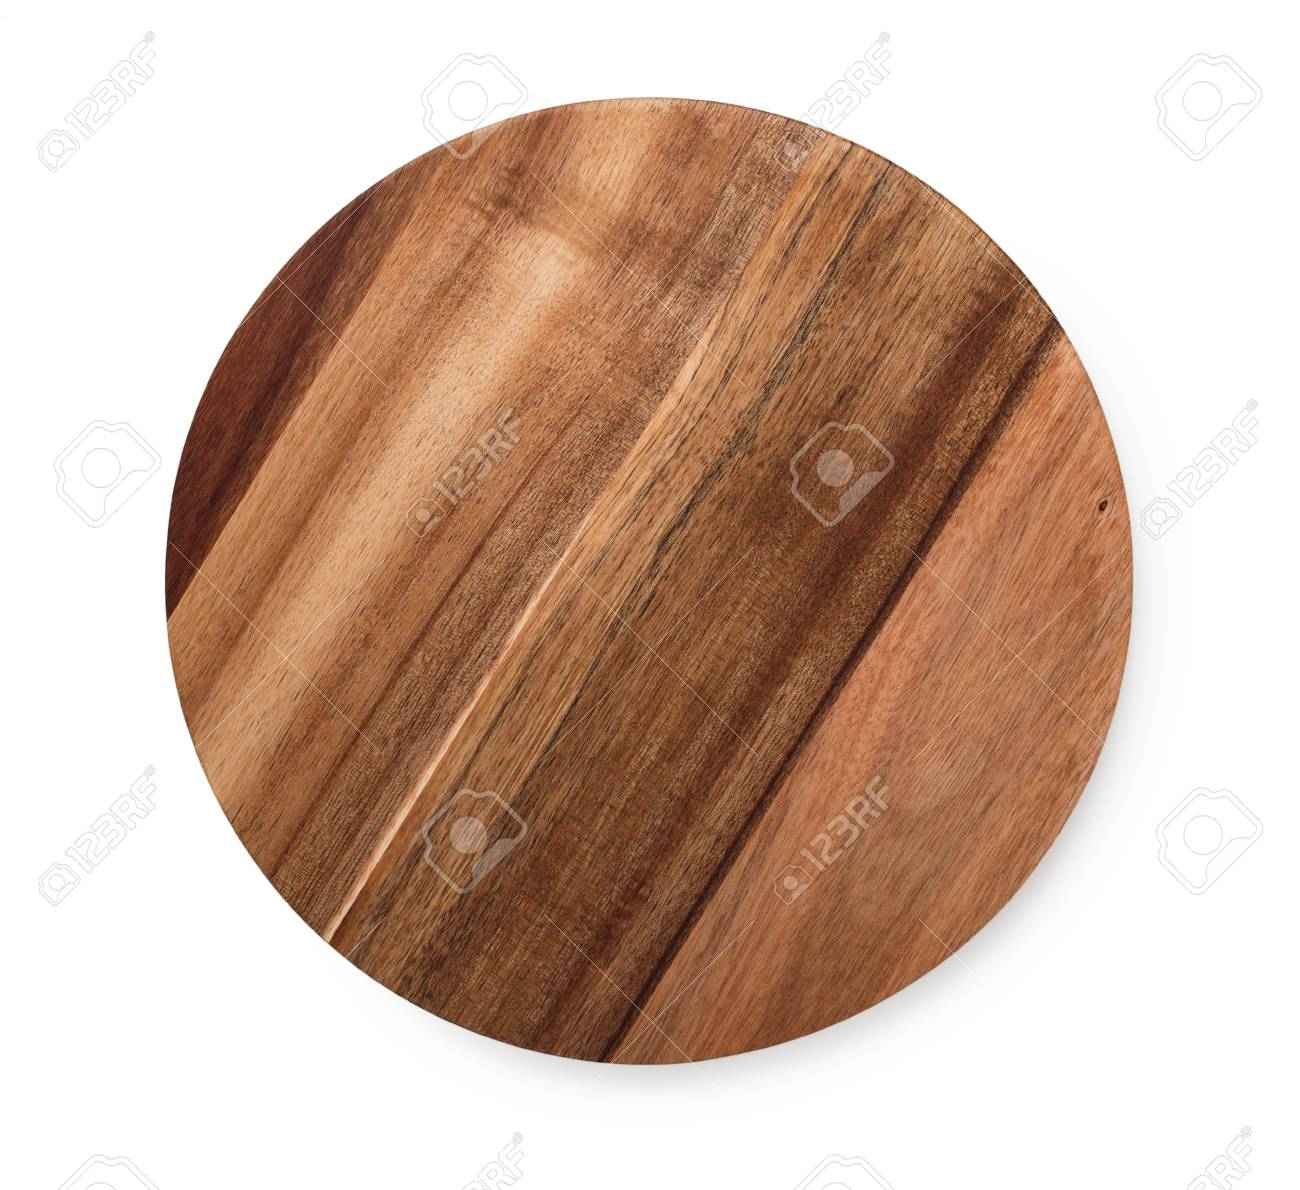 Acacia Wood Round Cutting Board Isolated On White Background Top View Banco De Imagens Royalty Free Ilustracoes Imagens E Banco De Imagens Image 89174774